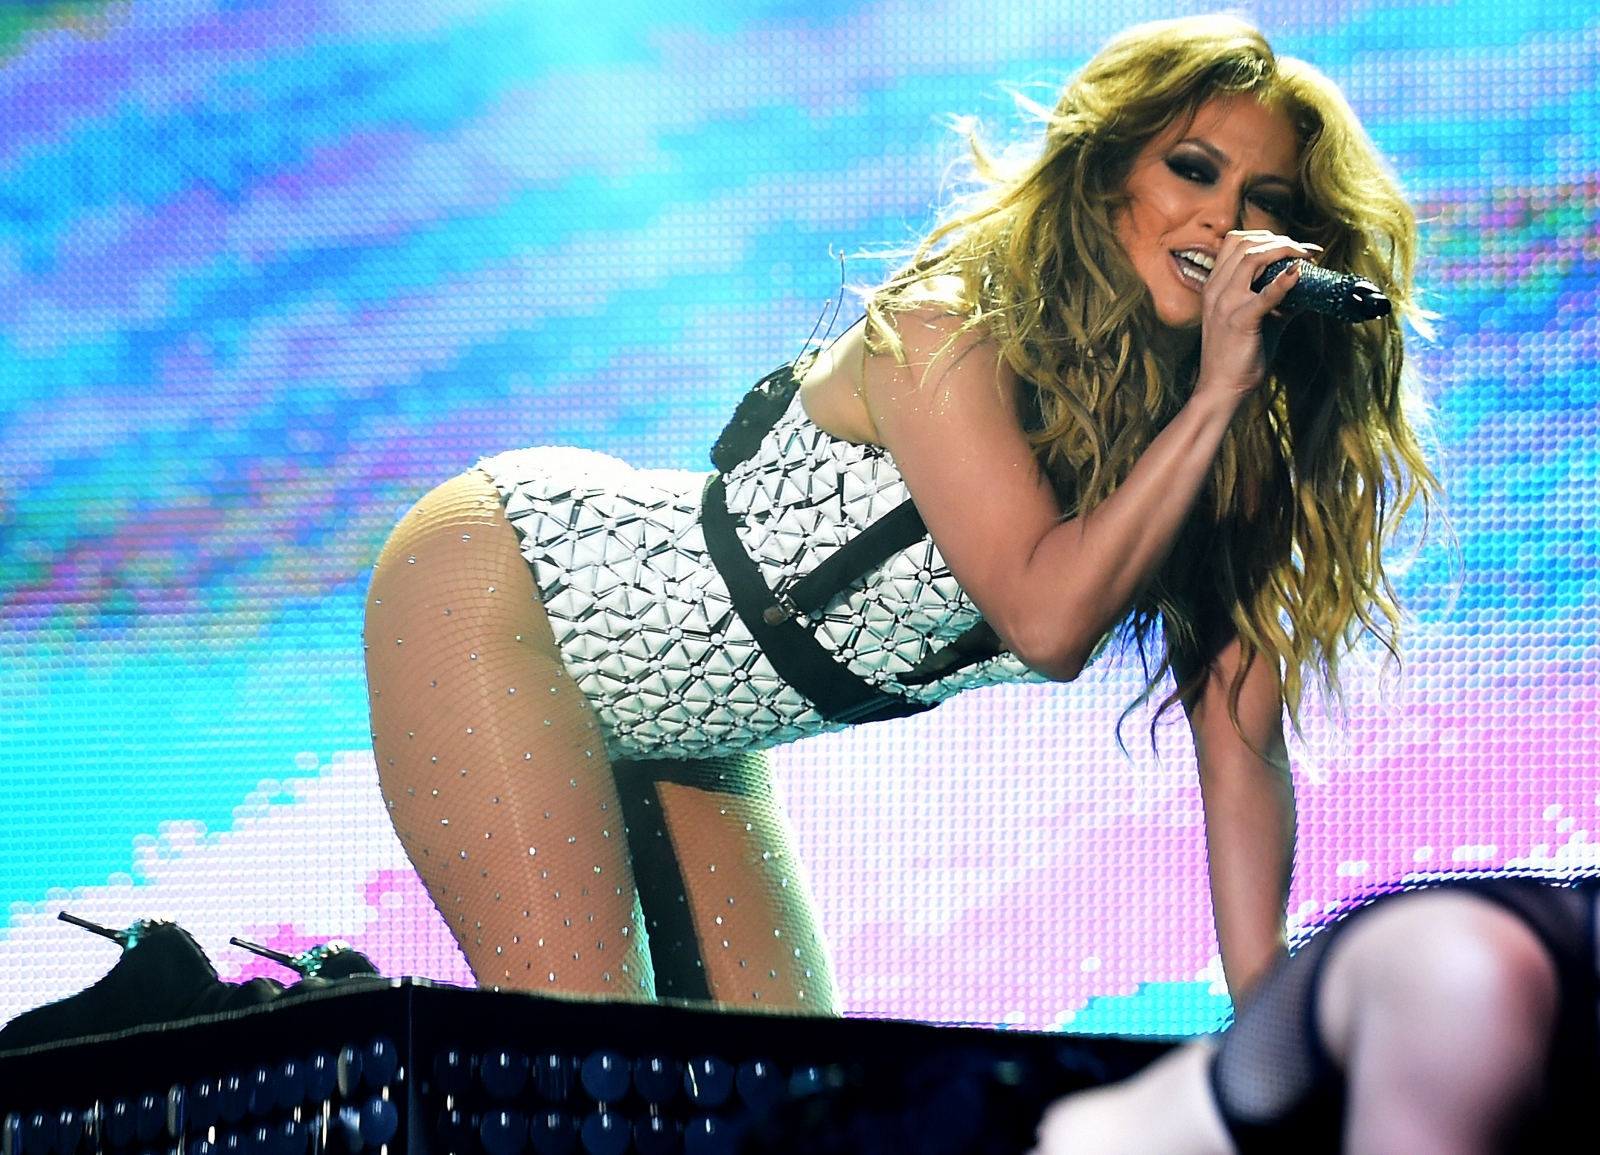 Jennifer Lopez performs at the Mawazine festival